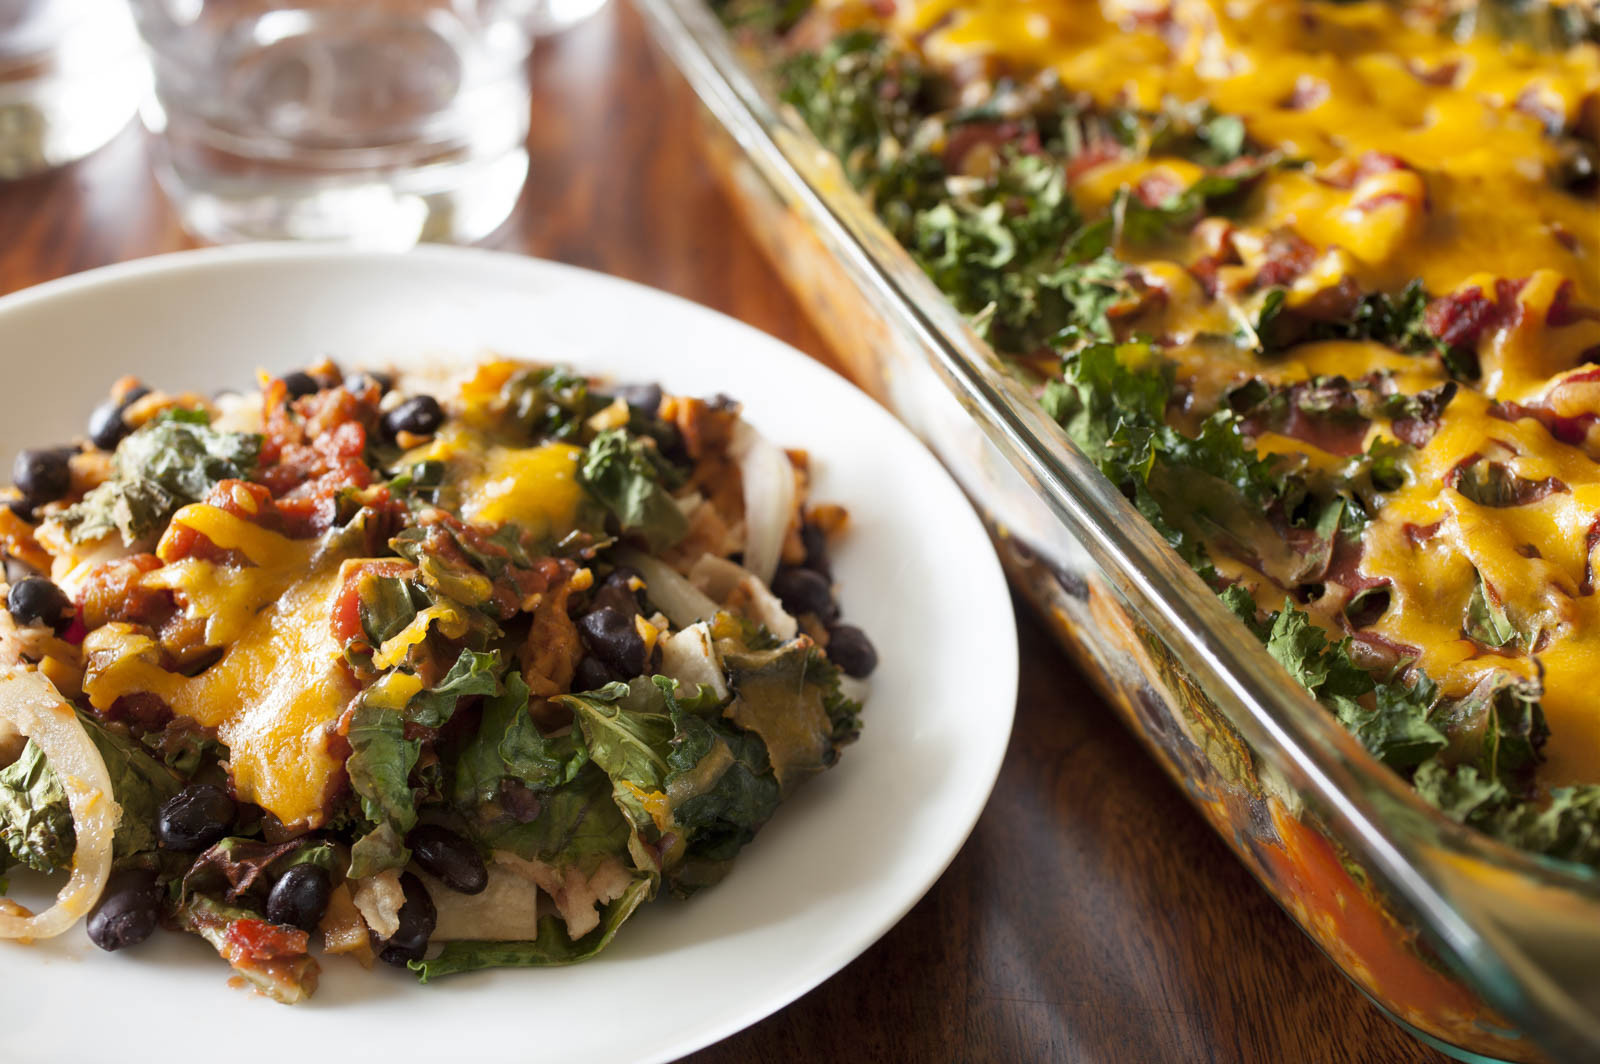 Kale Dinner Recipes  Easy Enchilada Casserole with Kale and Sweet Potatoes